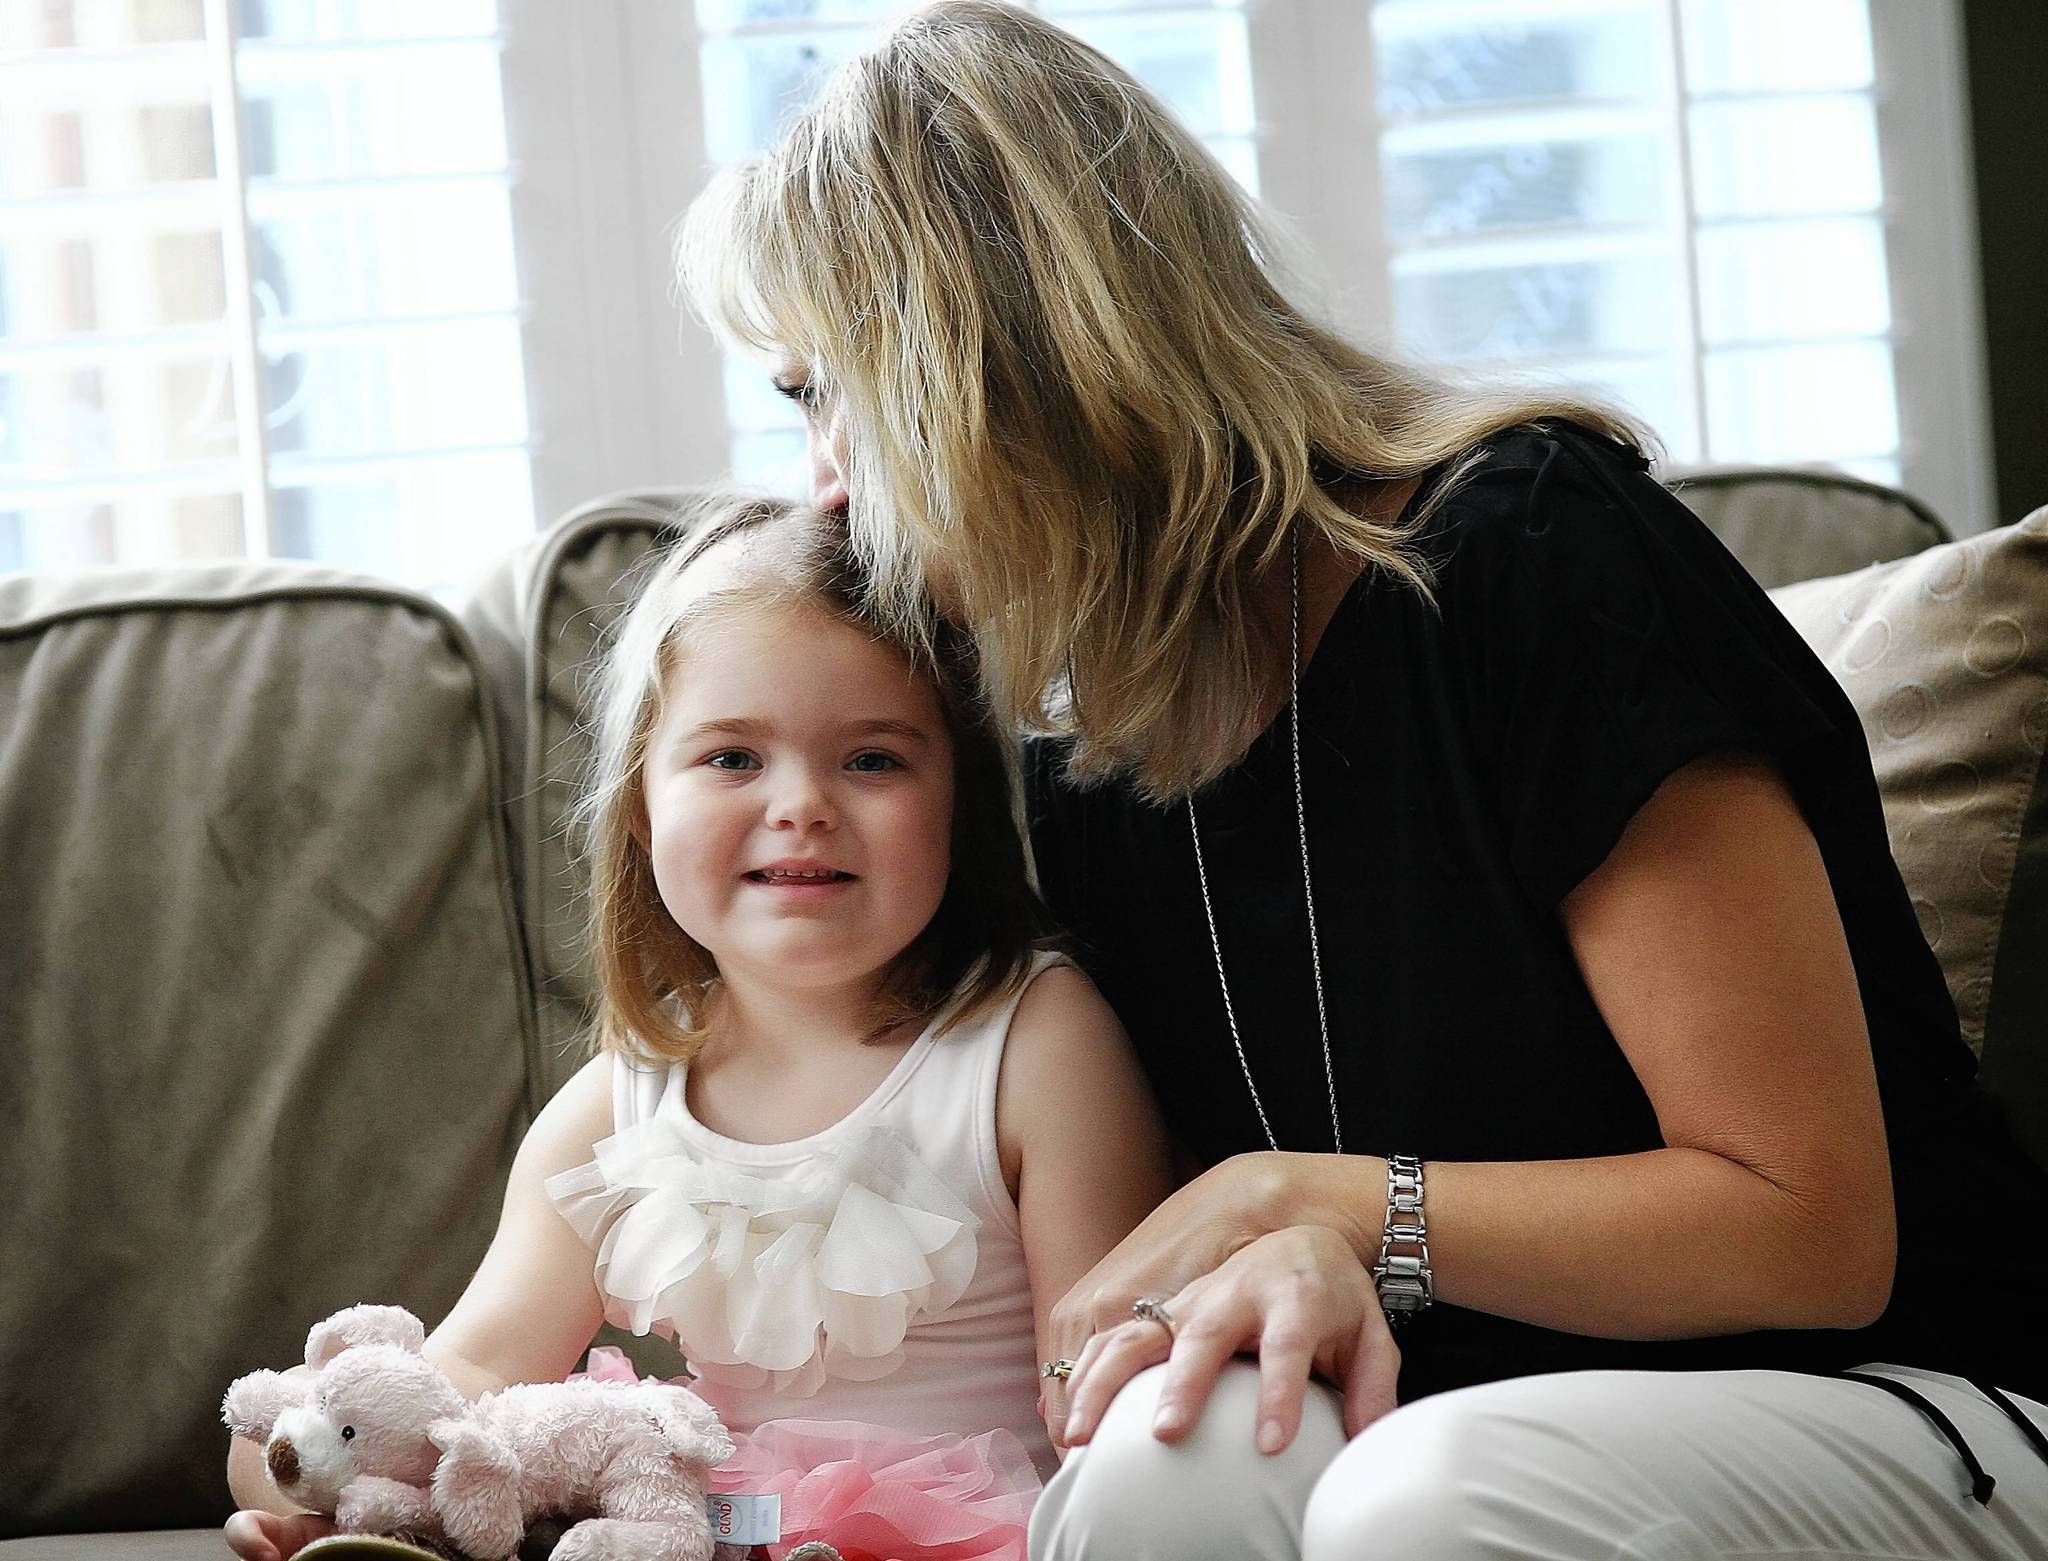 Caitlin Downing with her mom, Denise, in May. Caitlin, 5, died Sunday. (Jacob Langston, Orlando Sentinel file)